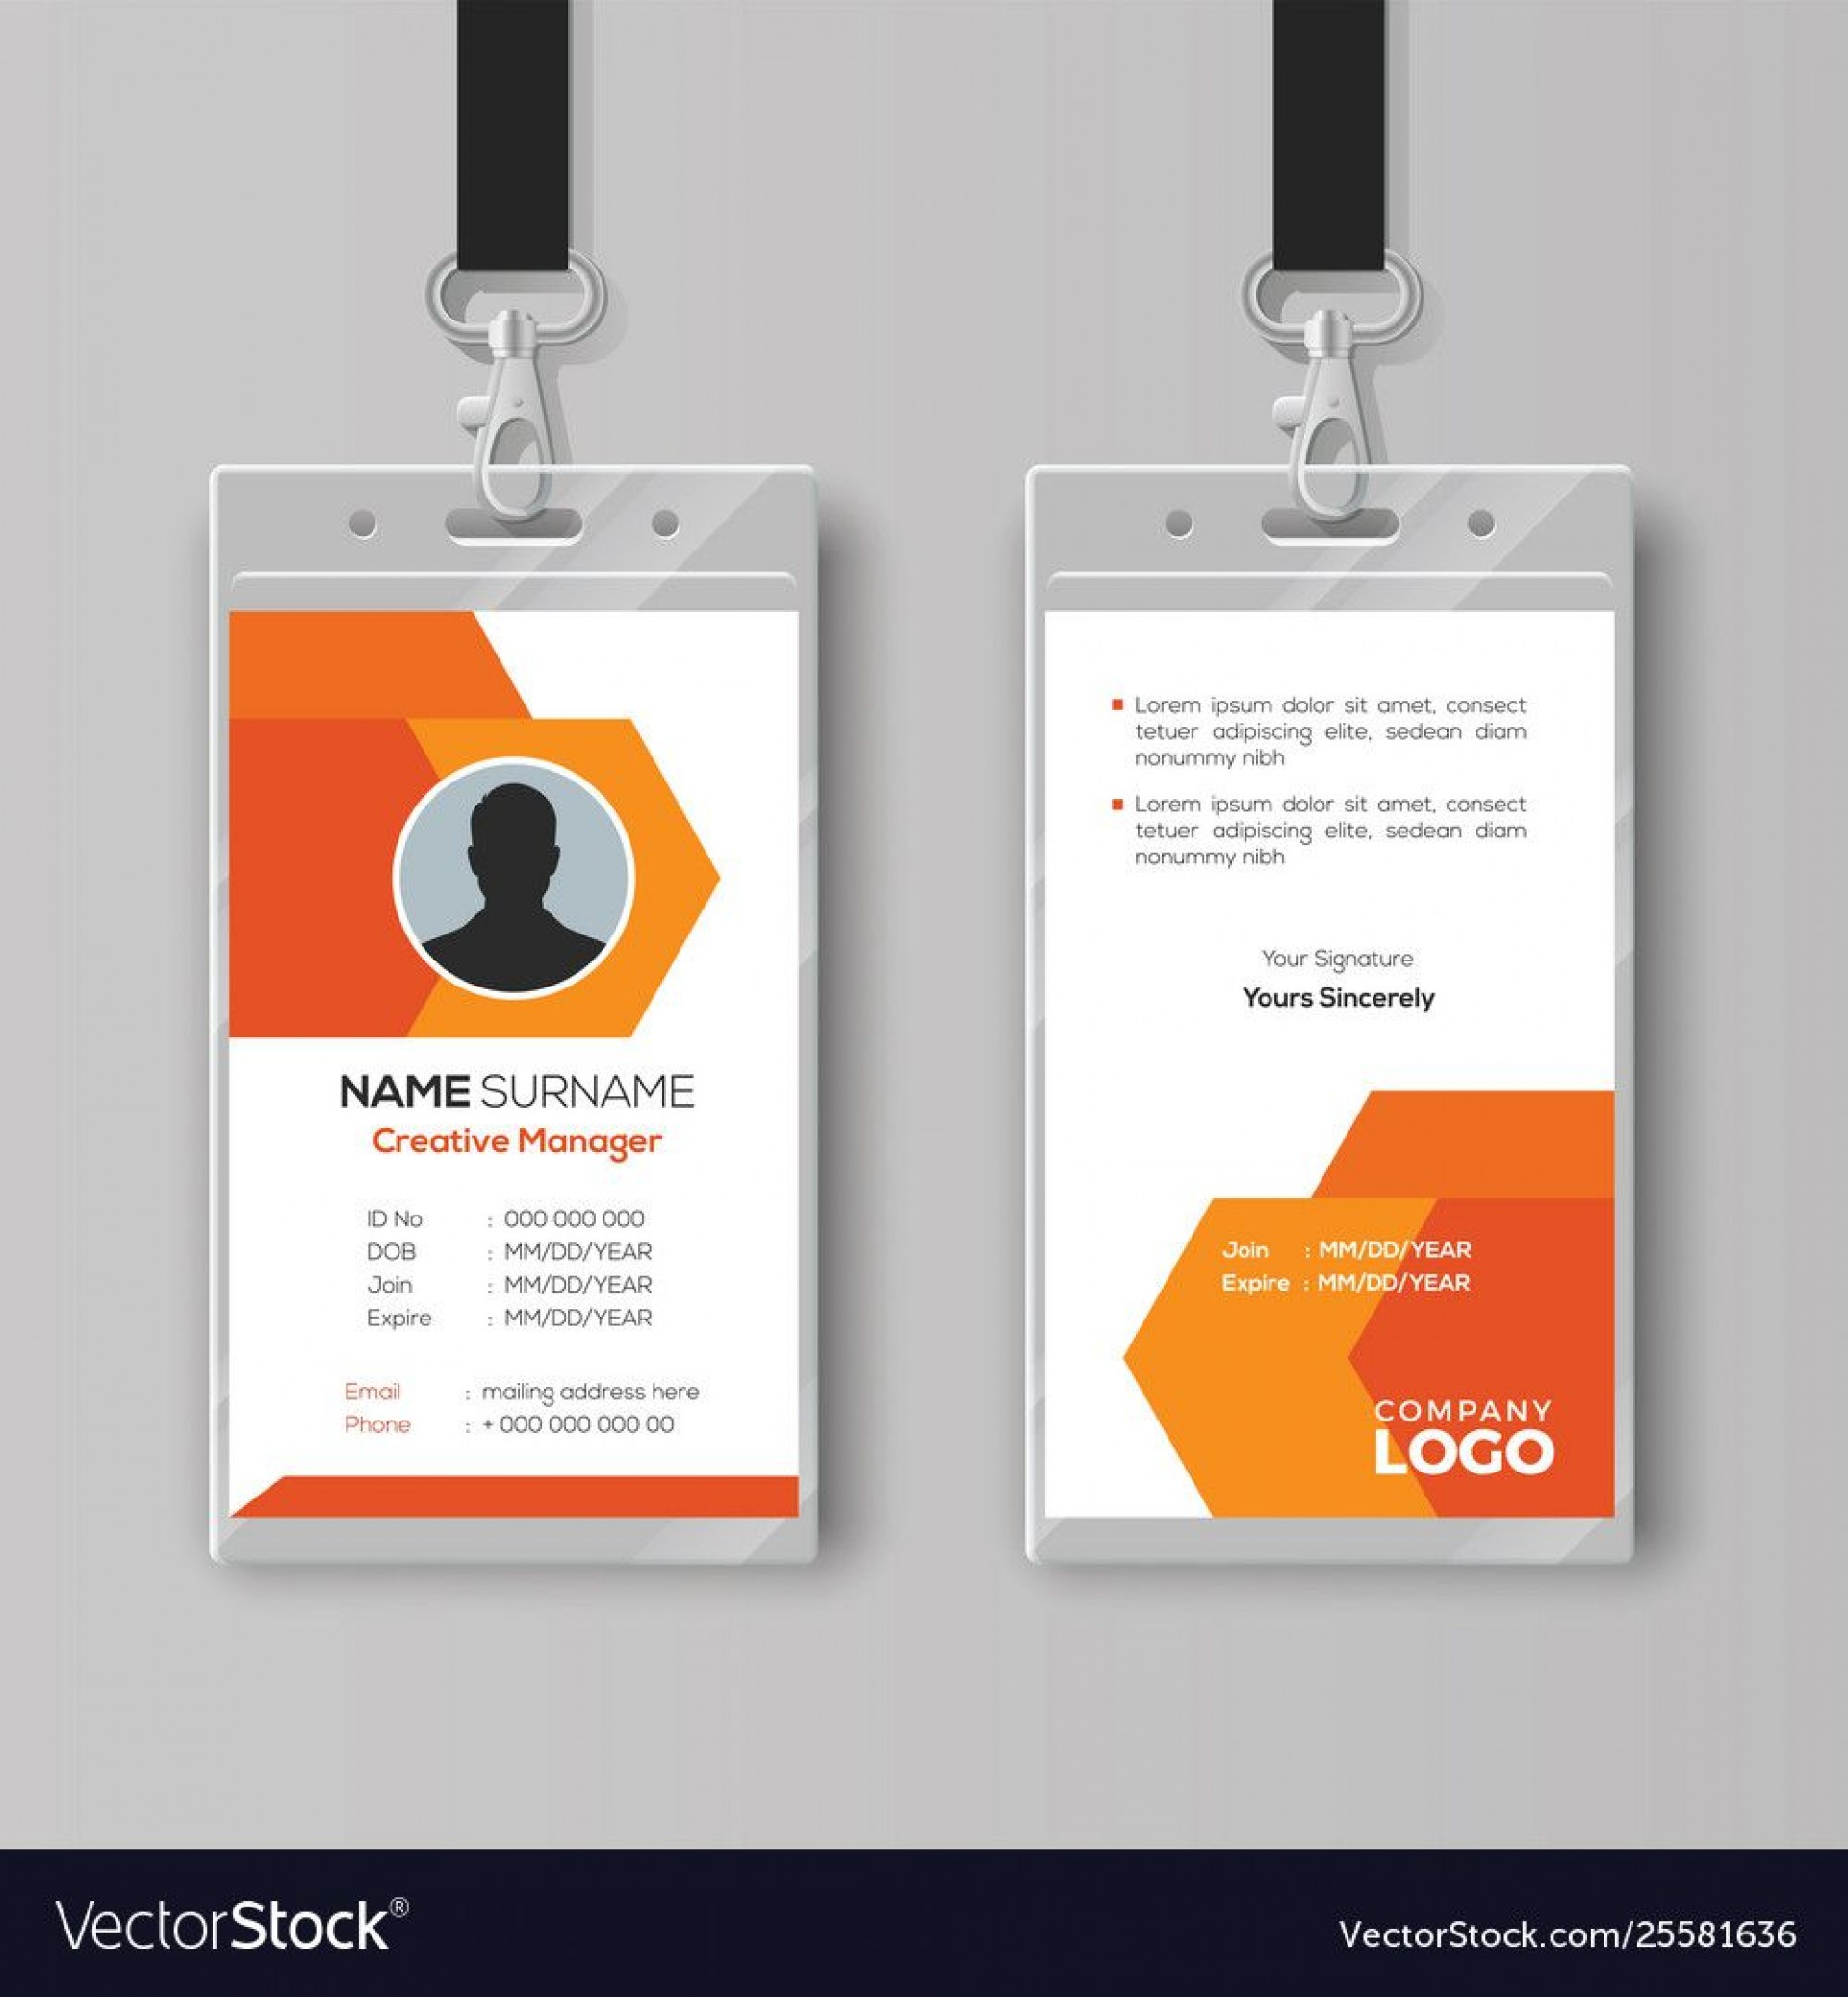 001 Unforgettable Id Card Template Free Example  Download Pdf Design1920